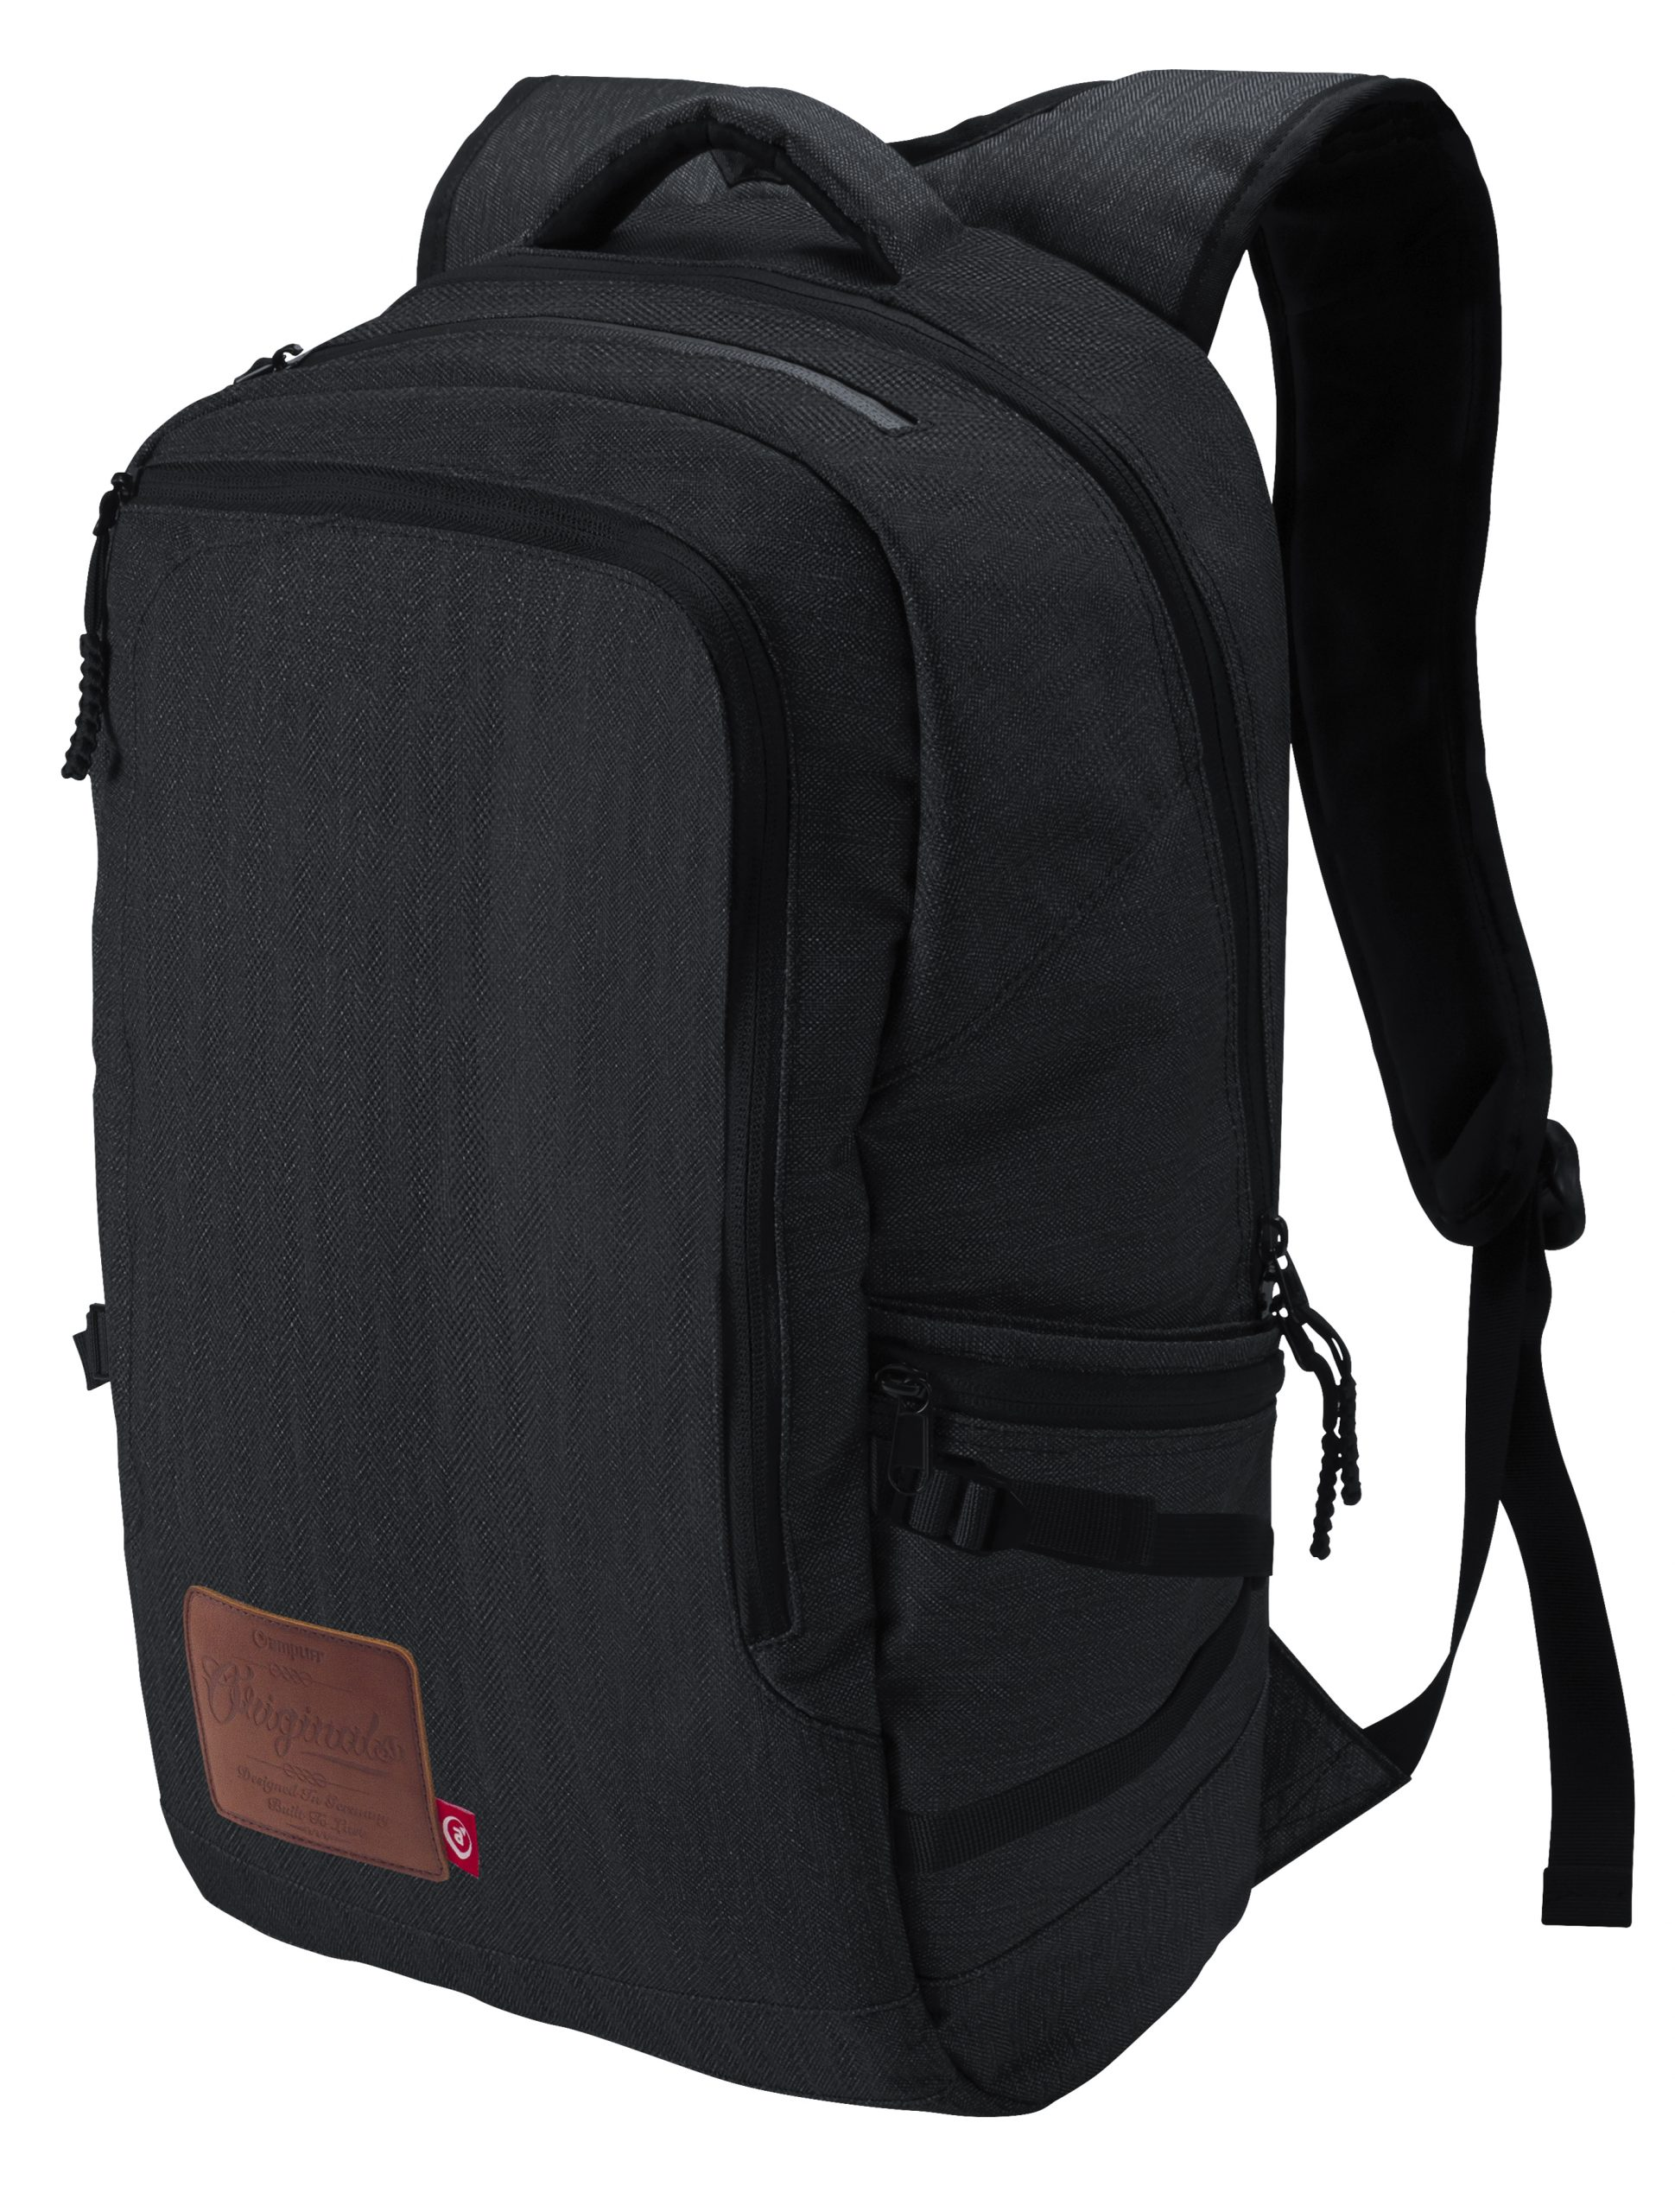 AMPLIFI SS21 Backpack